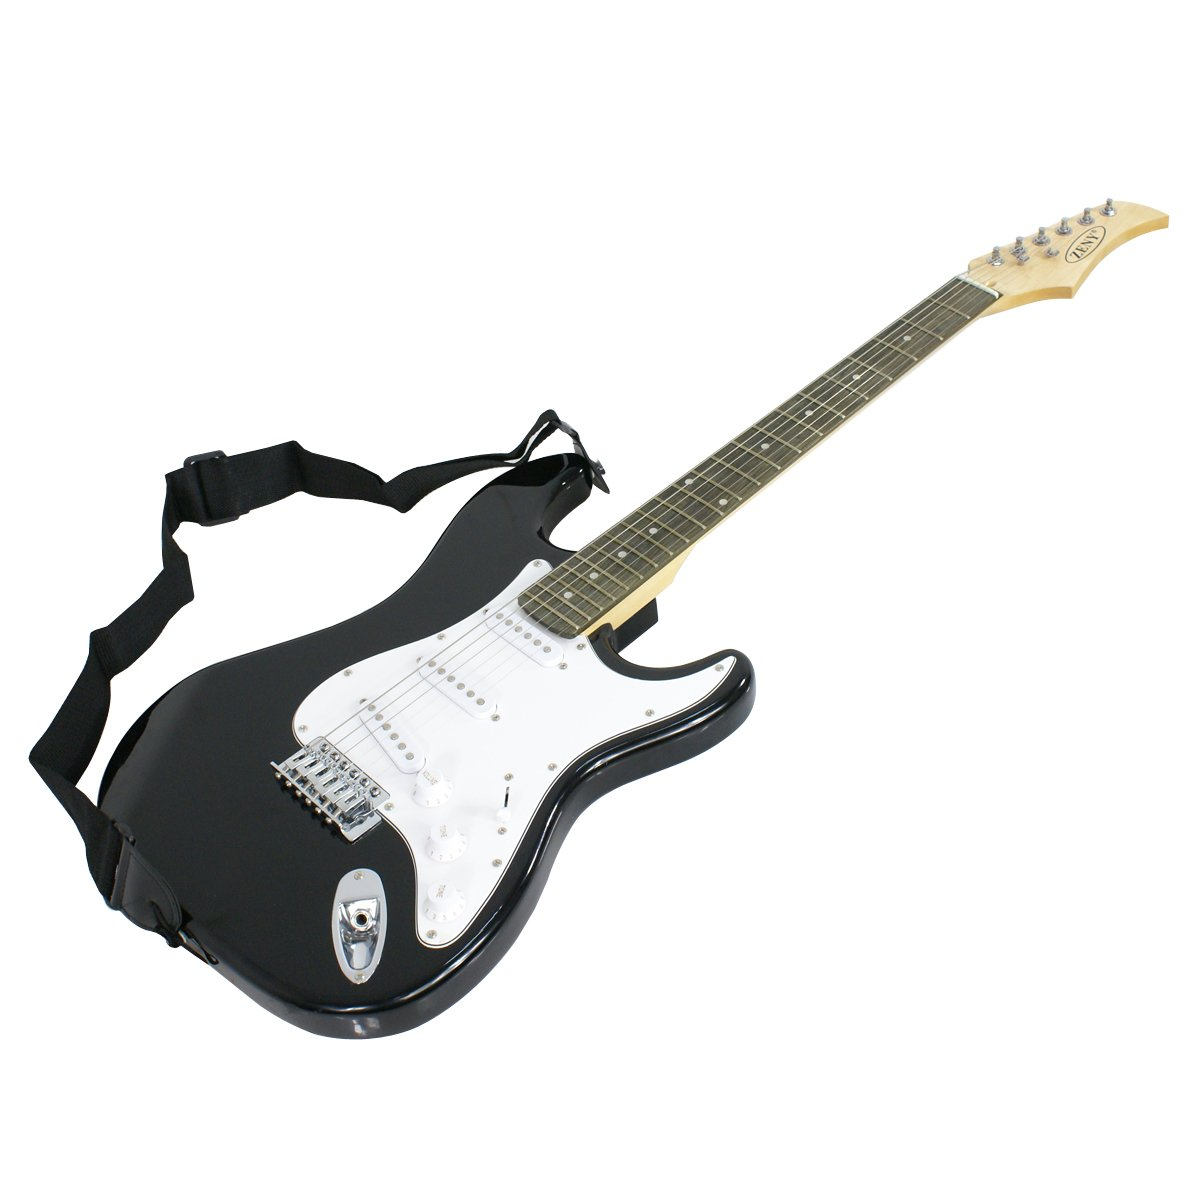 Just the Black ZENY Electric Guitar